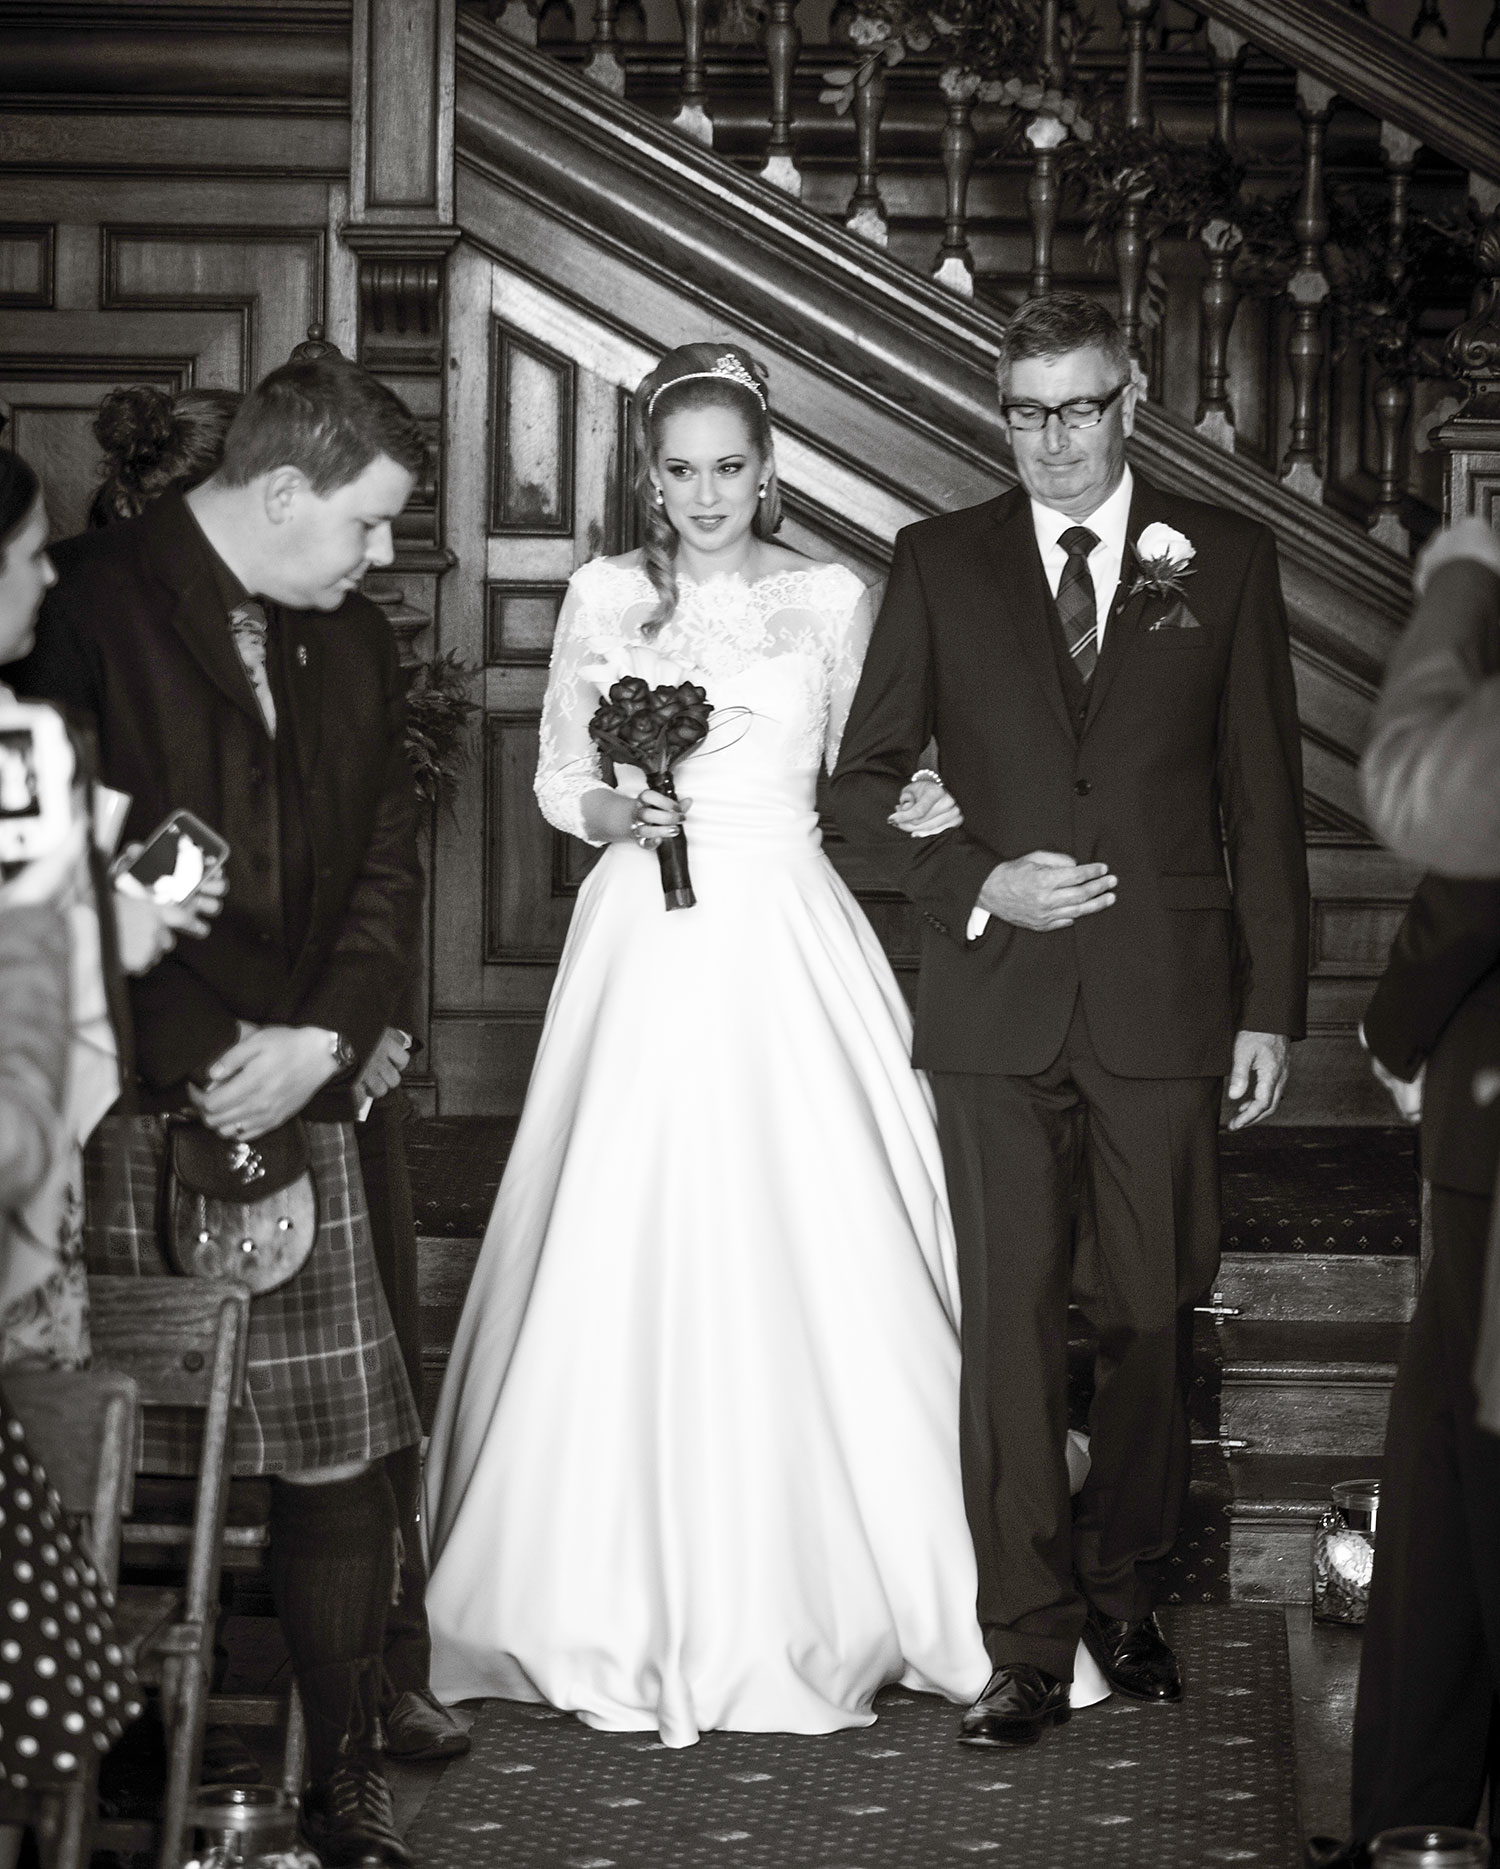 I took this photo with just available / natural light coming in through the big windows at Dalhousie Castle. It's fabulous to see the bride and her dad walking down the aisle, best spot for the photographer during the wedding ceremony